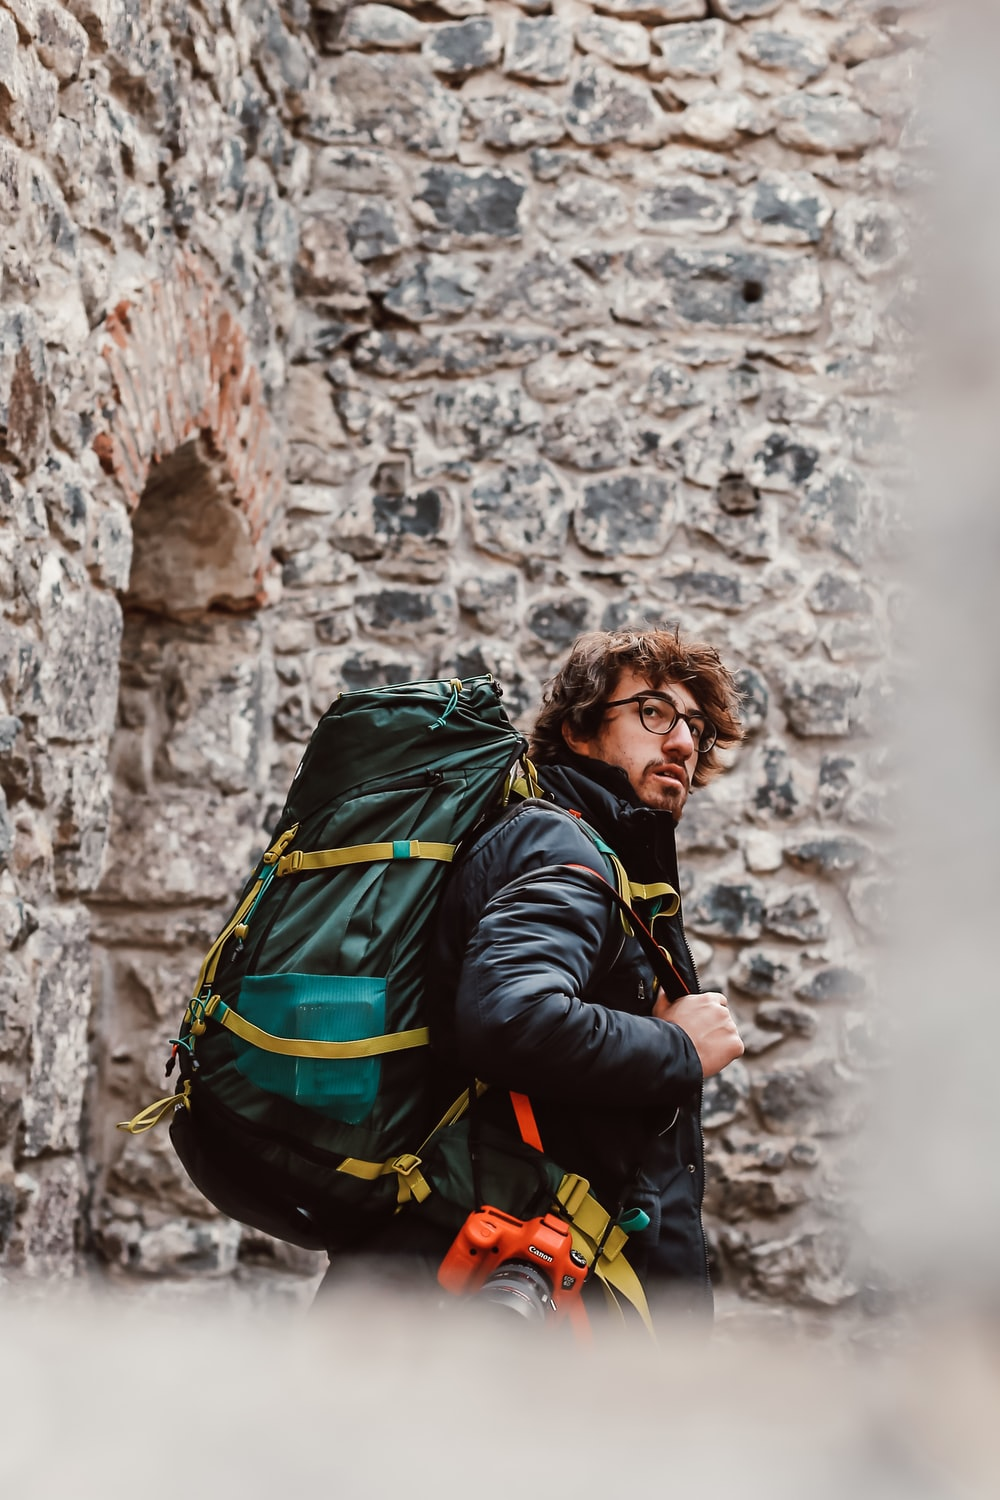 man in black jacket carrying green backpack